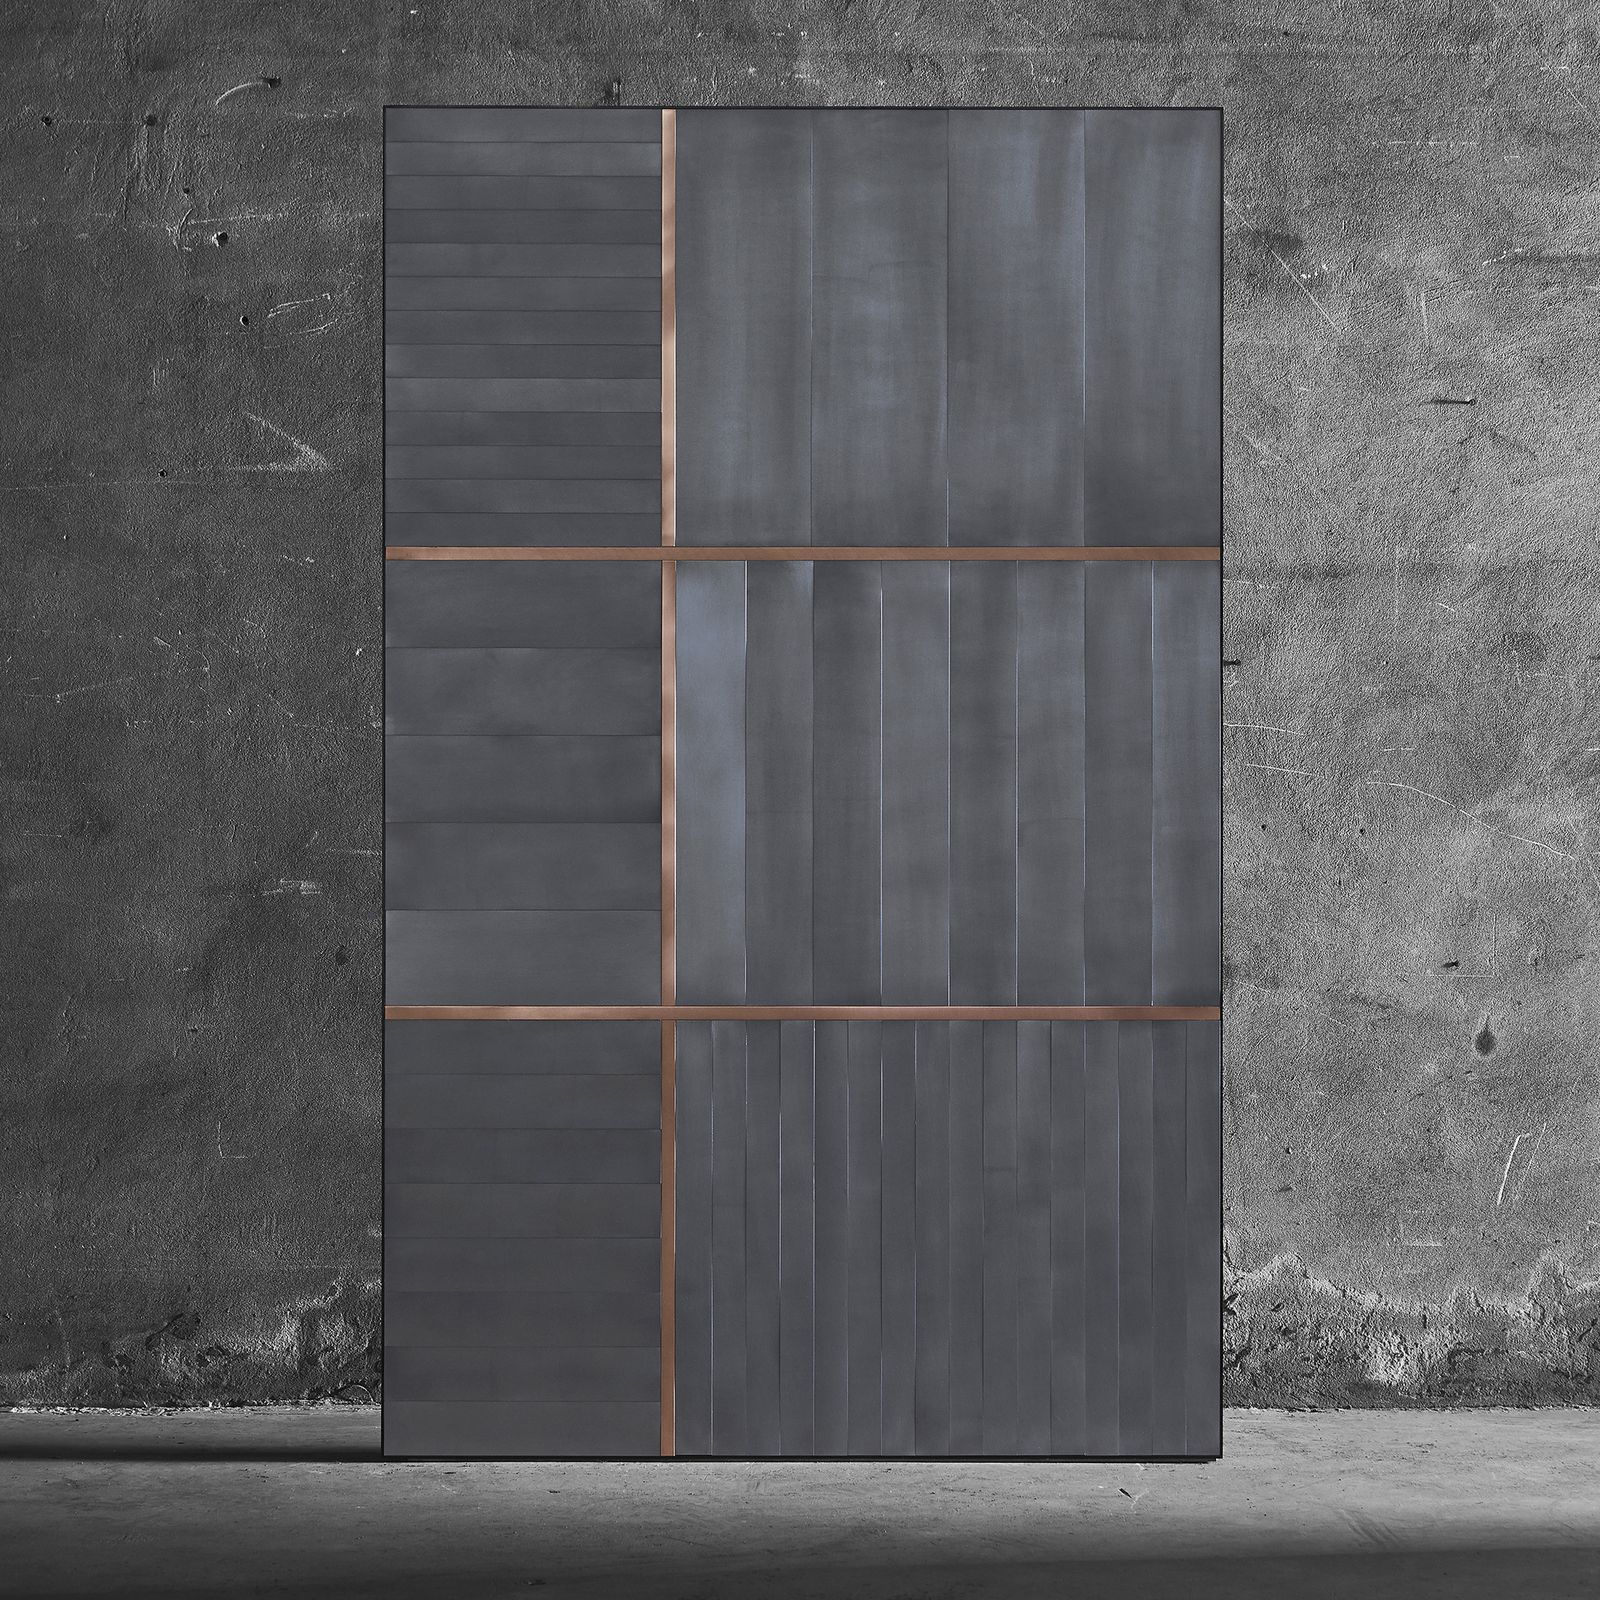 Albers Wall Cladding In 2020 Exterior Wall Cladding Wall Cladding Cladding Design